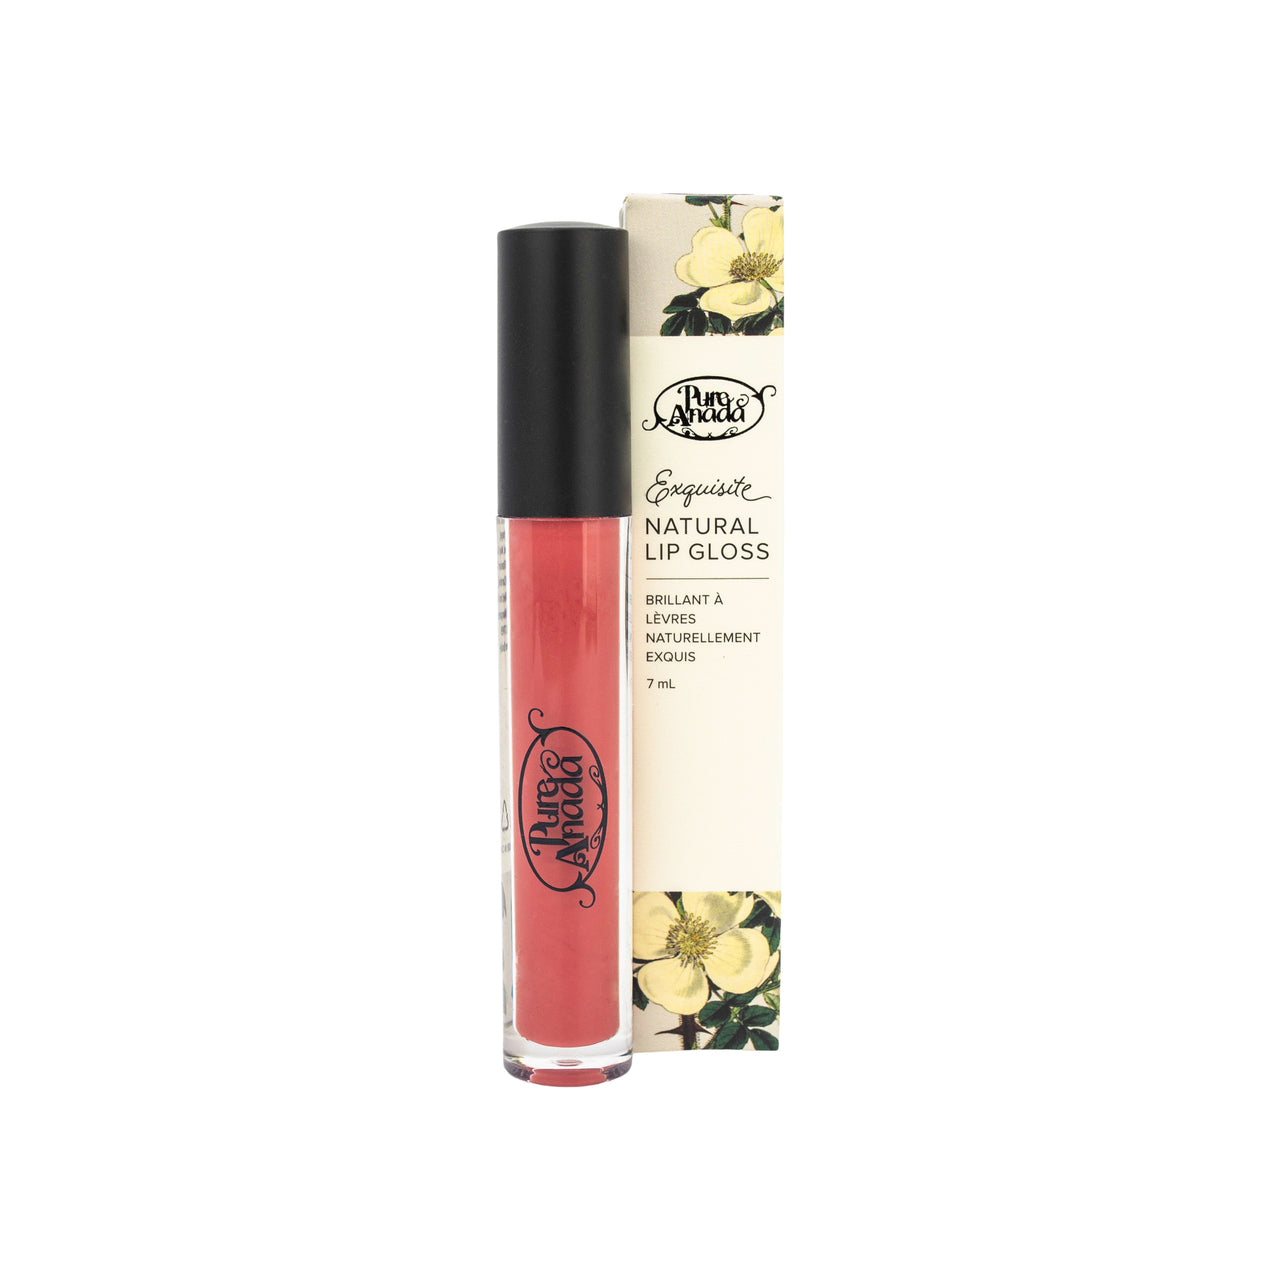 Pure Anada Exquisite Lip Gloss Pomegranate